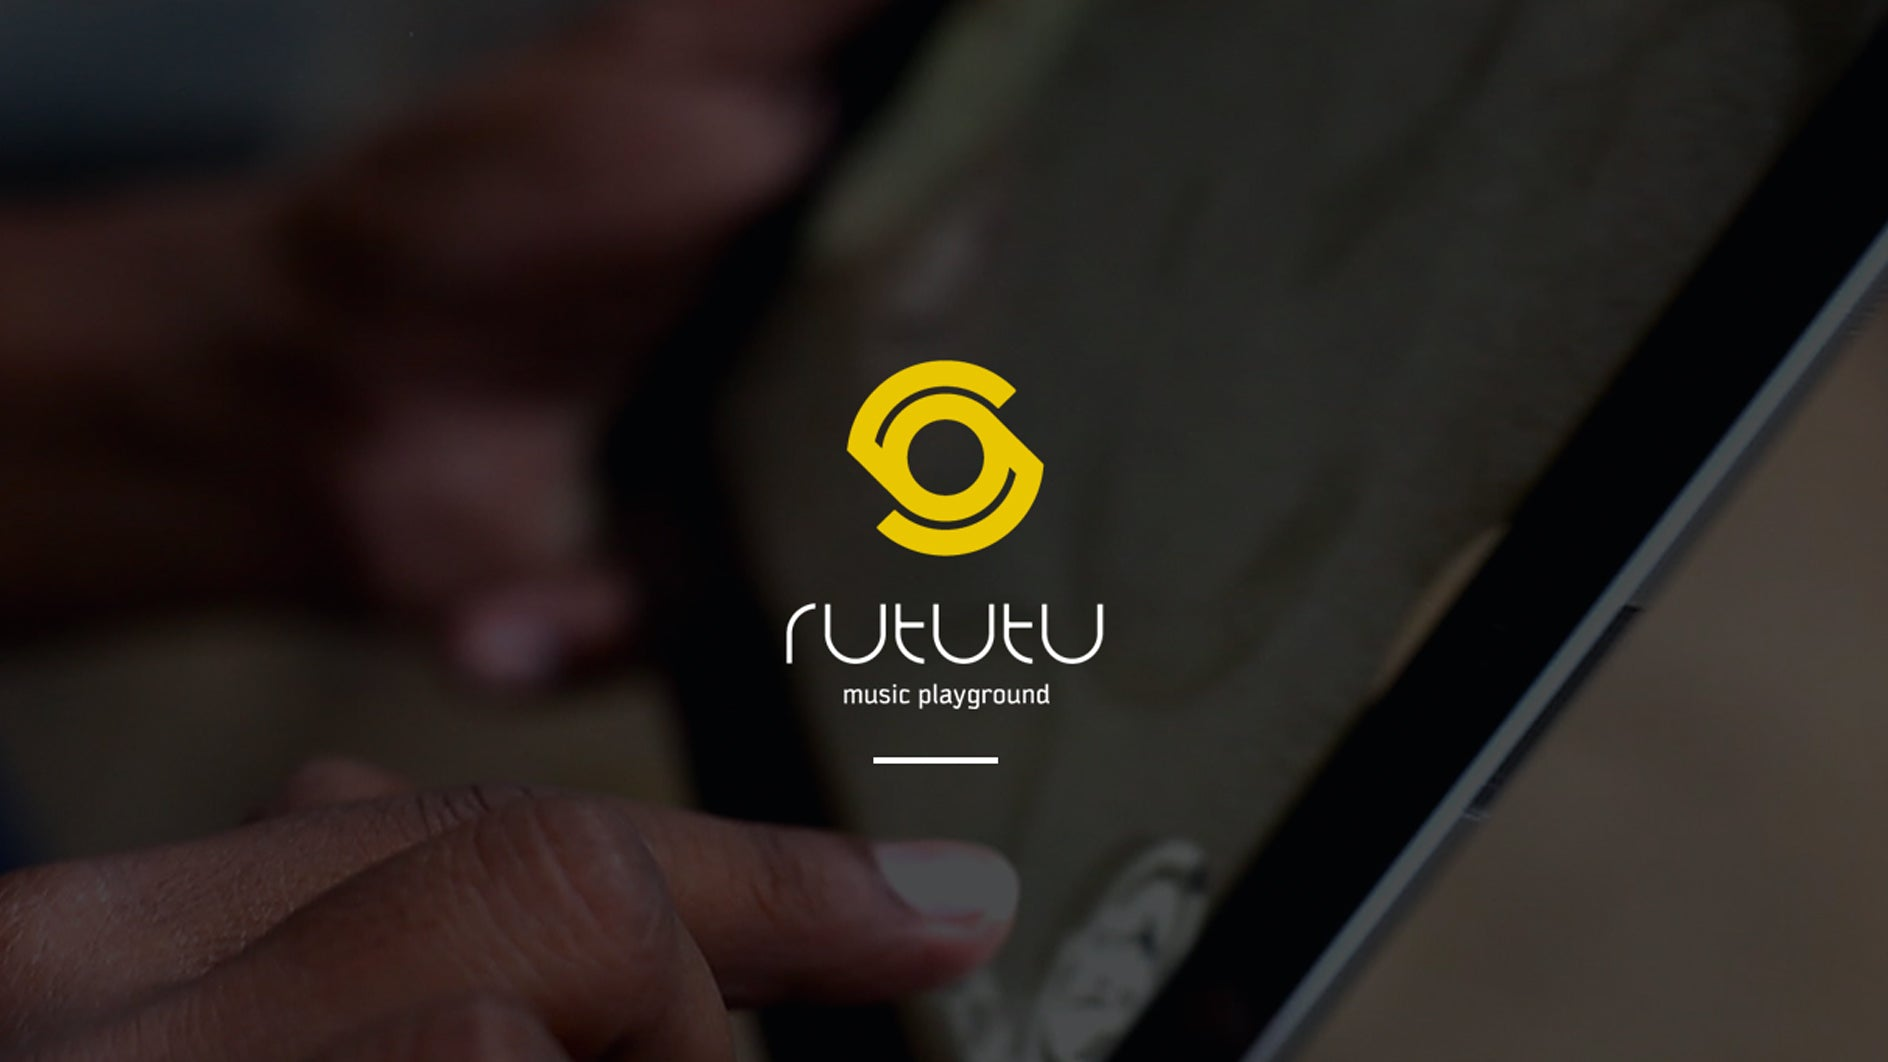 Support Us On Kickstarter - Rututu Music Playground